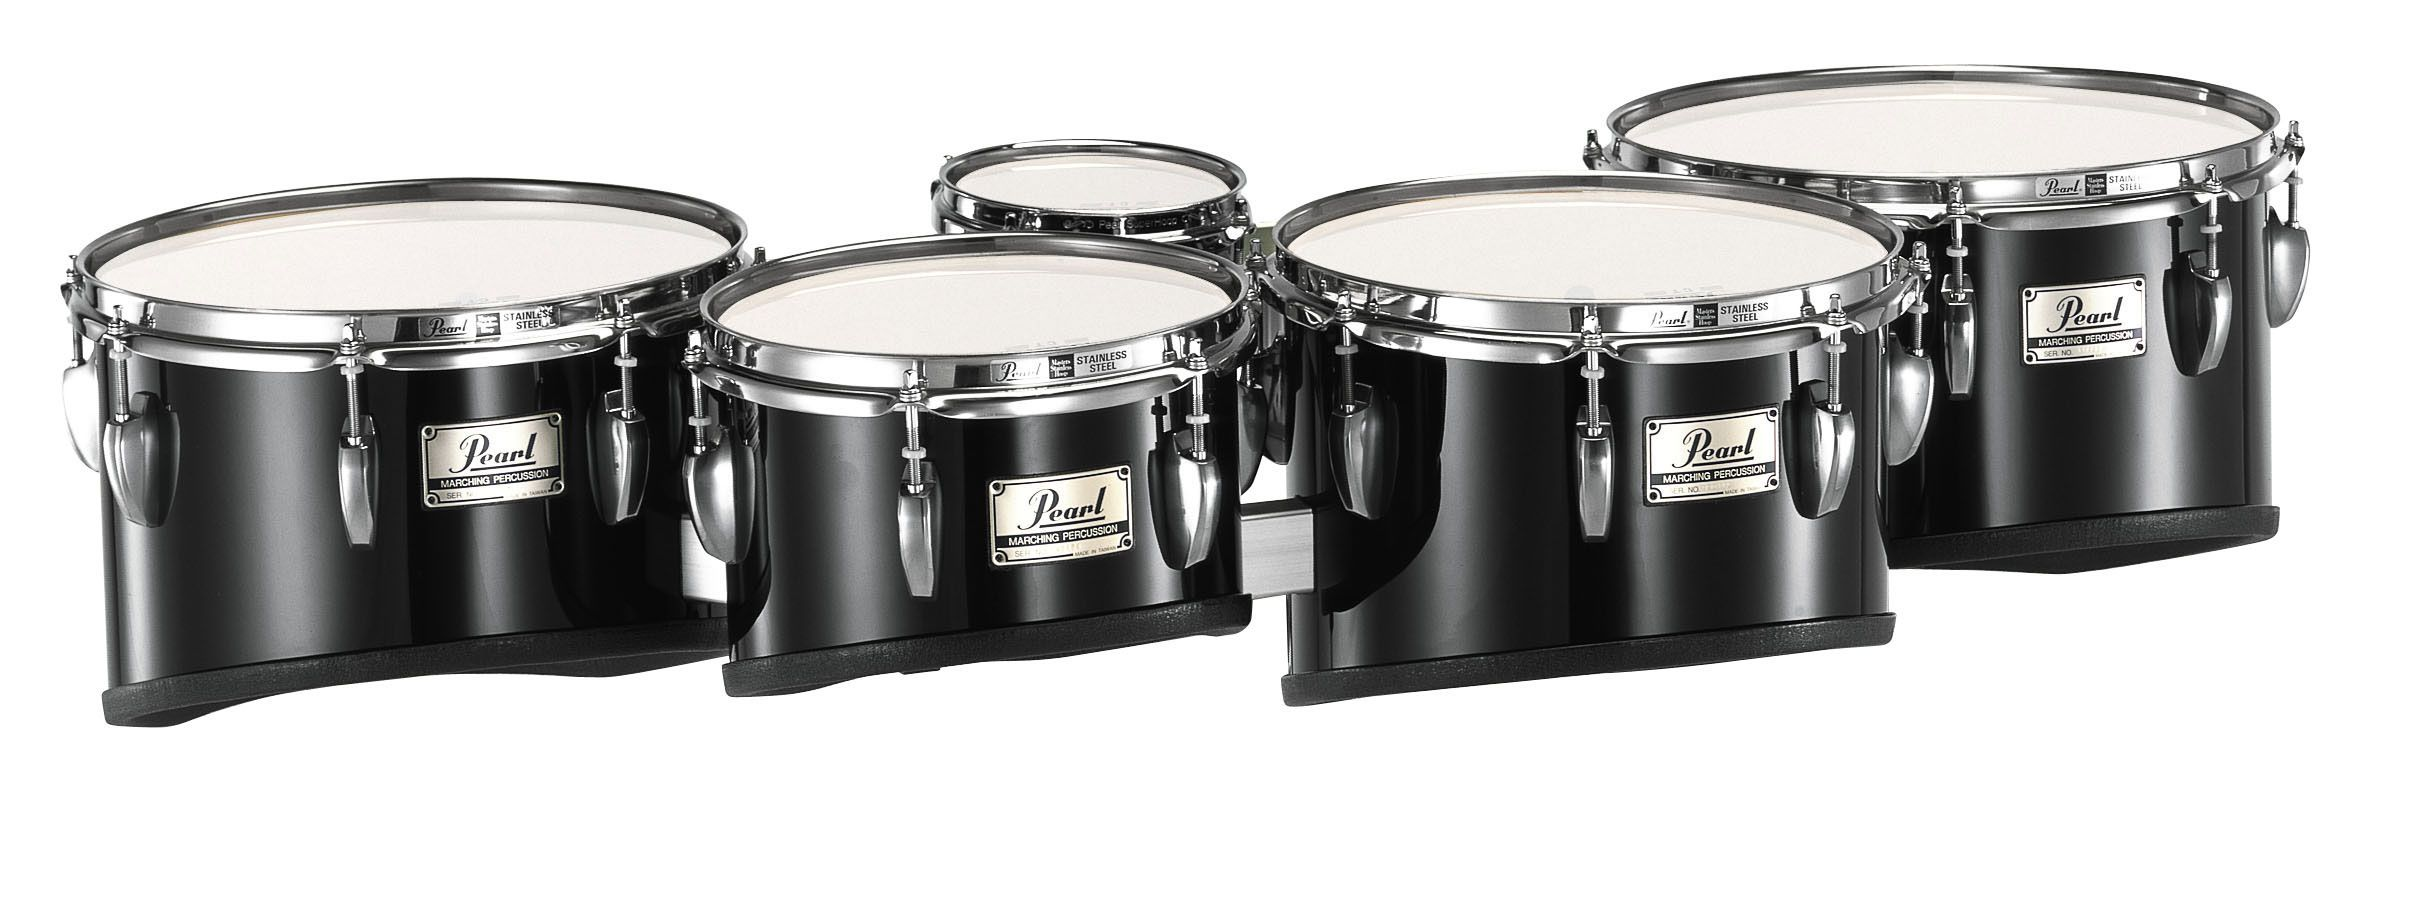 marching tenor drums marching band drums snare drum percussion. Black Bedroom Furniture Sets. Home Design Ideas